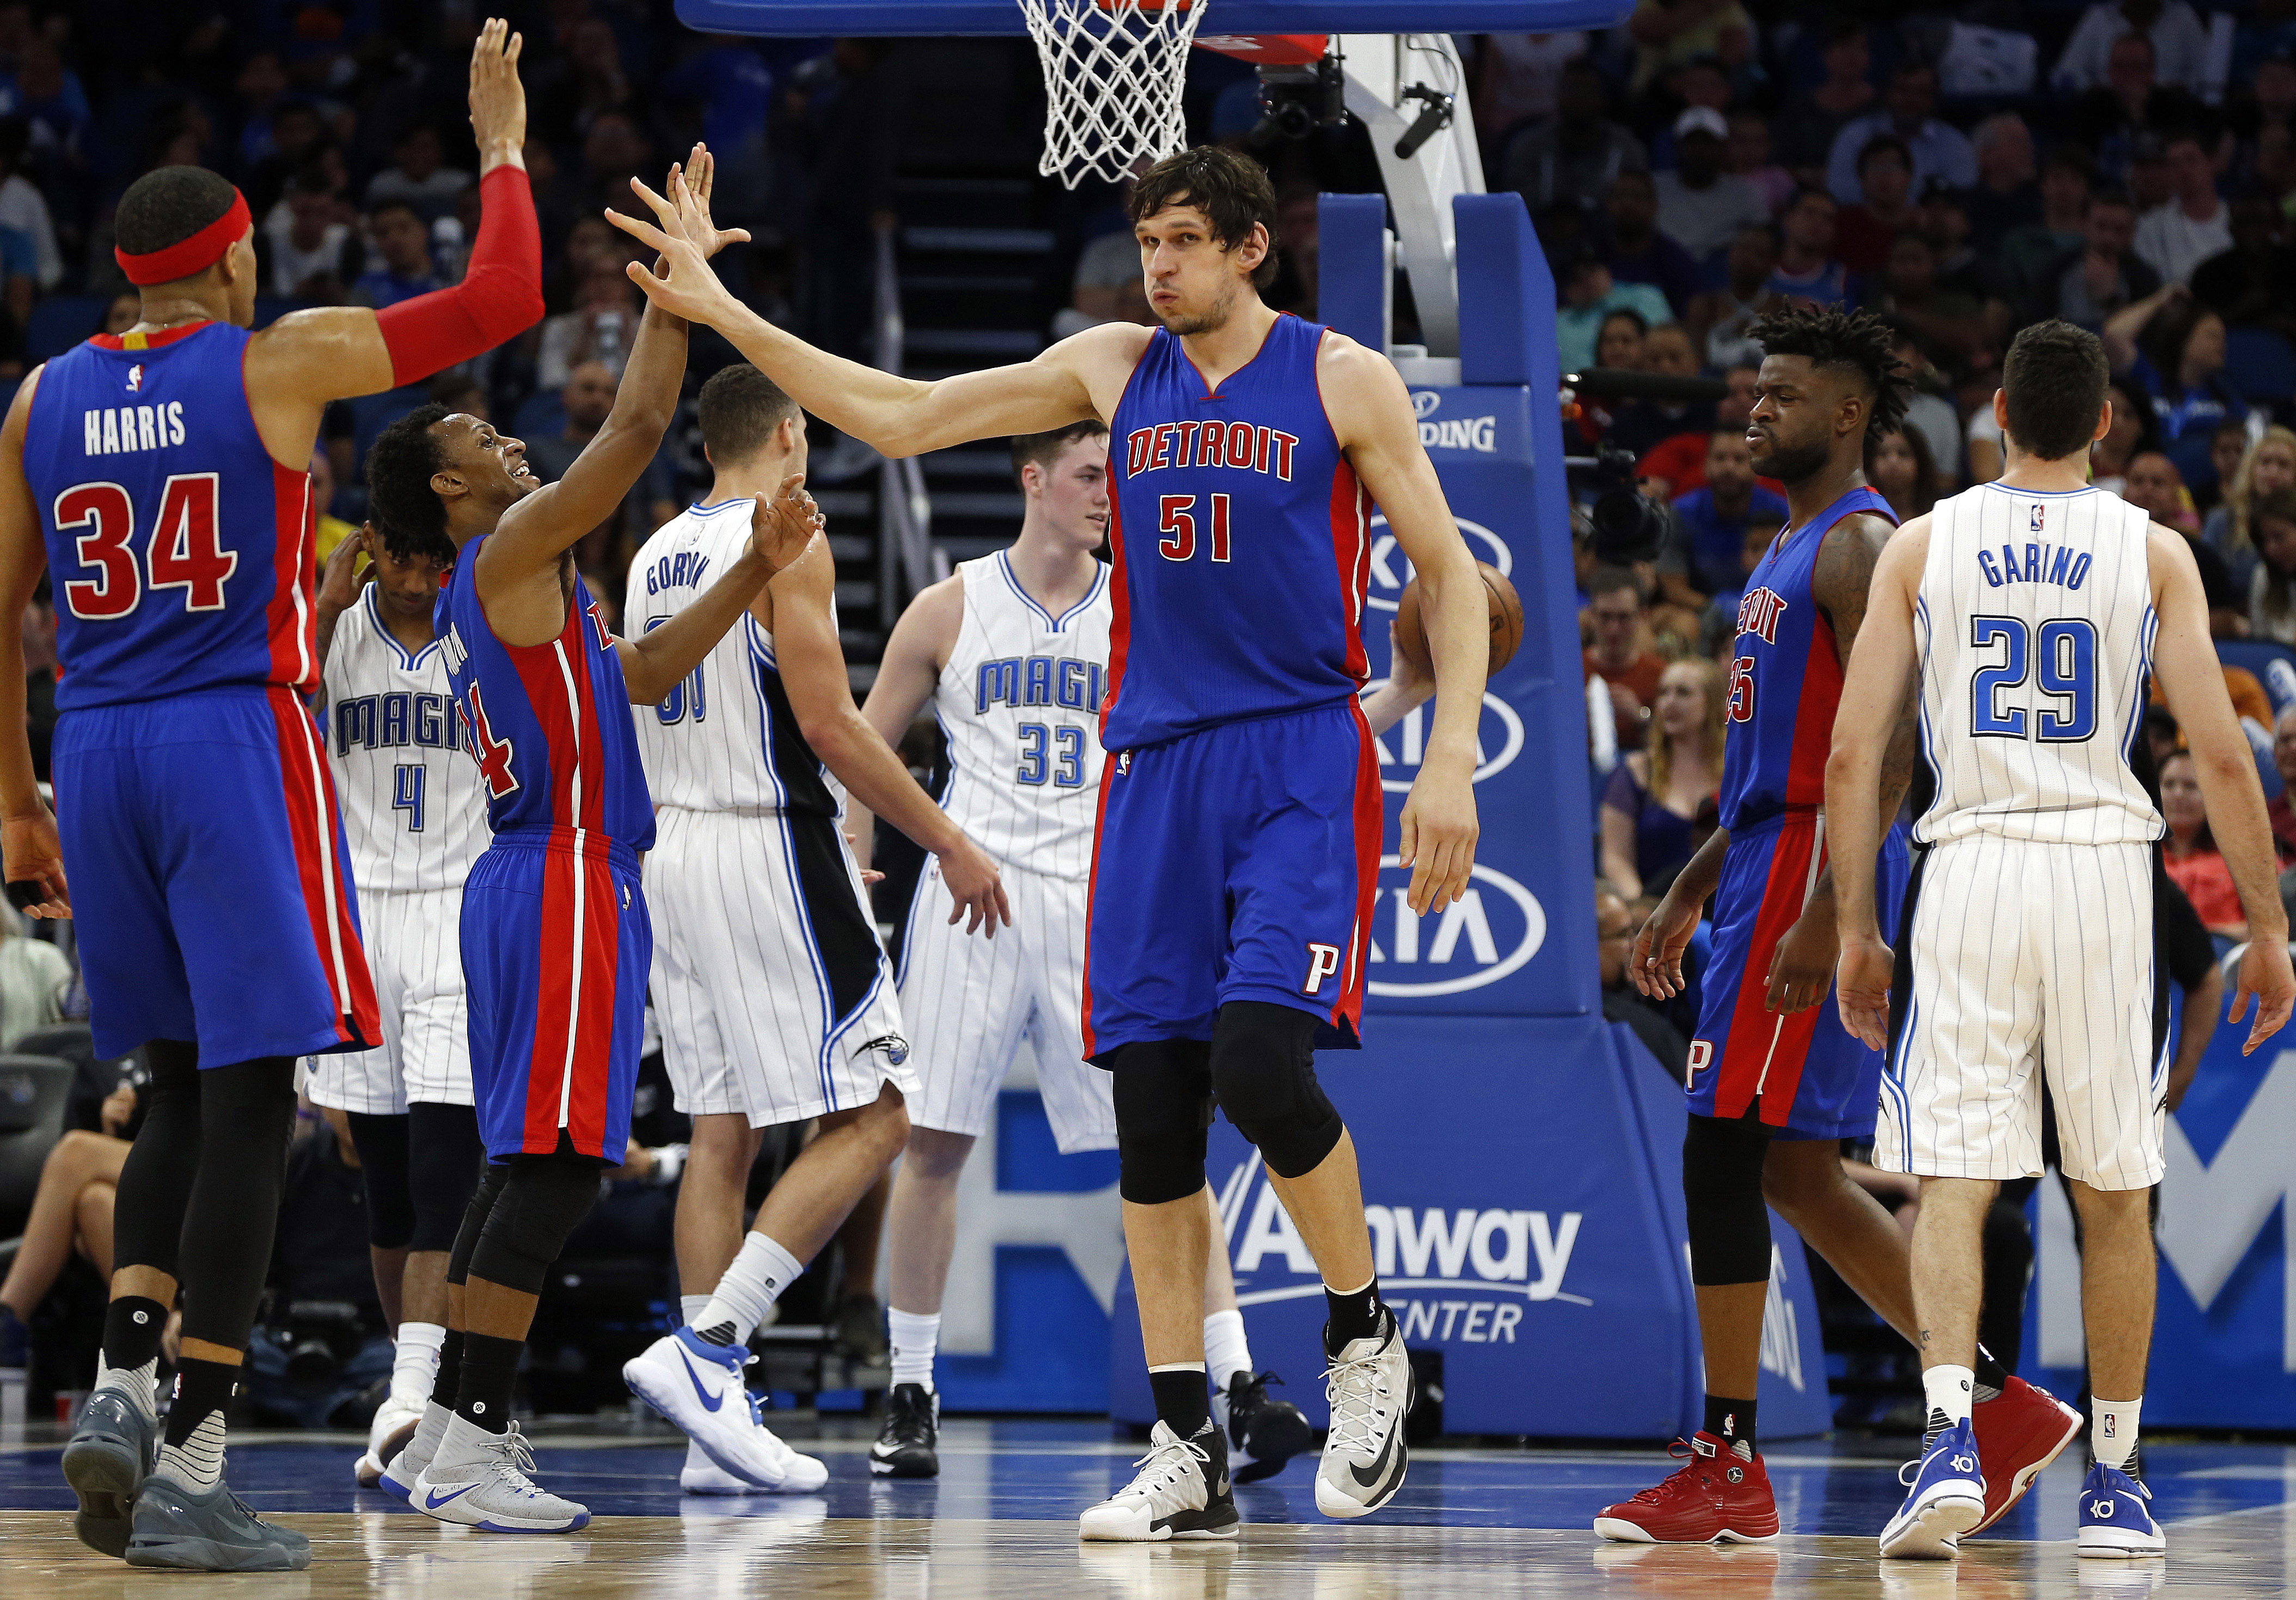 10009384-nba-detroit-pistons-at-orlando-magic